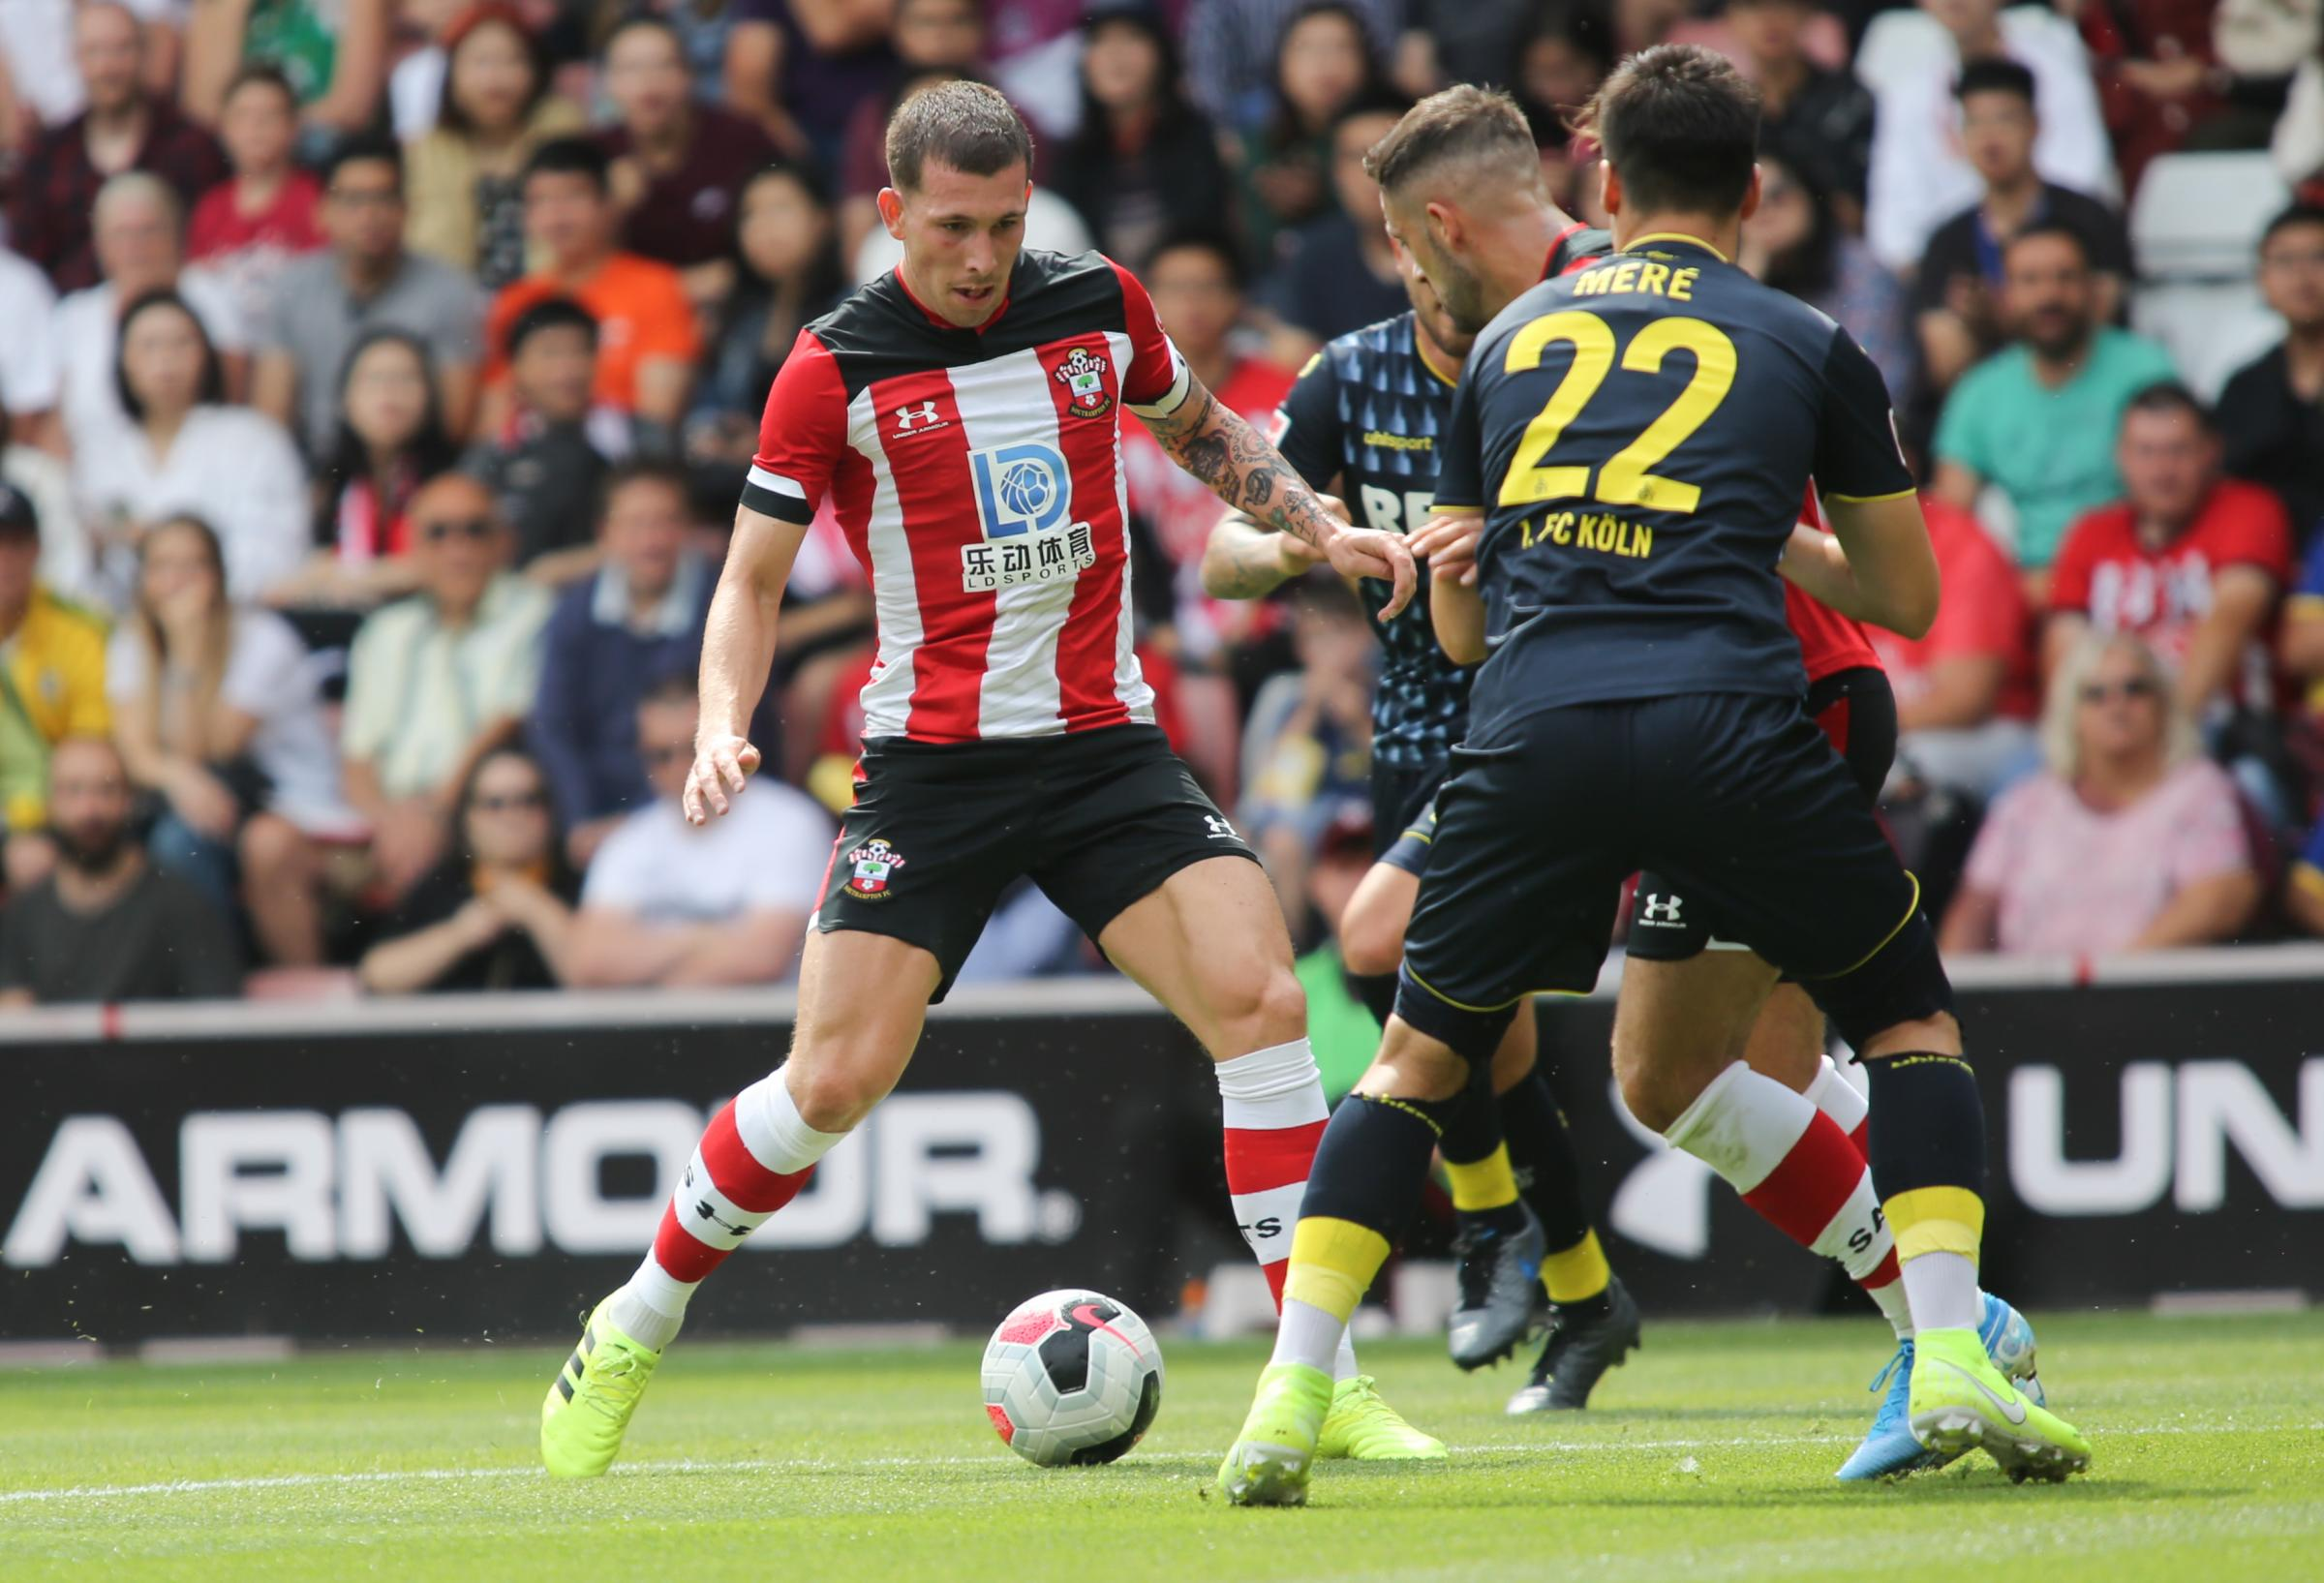 Southampton captain Pierre-Emile Hojbjerg tackles racism and social media